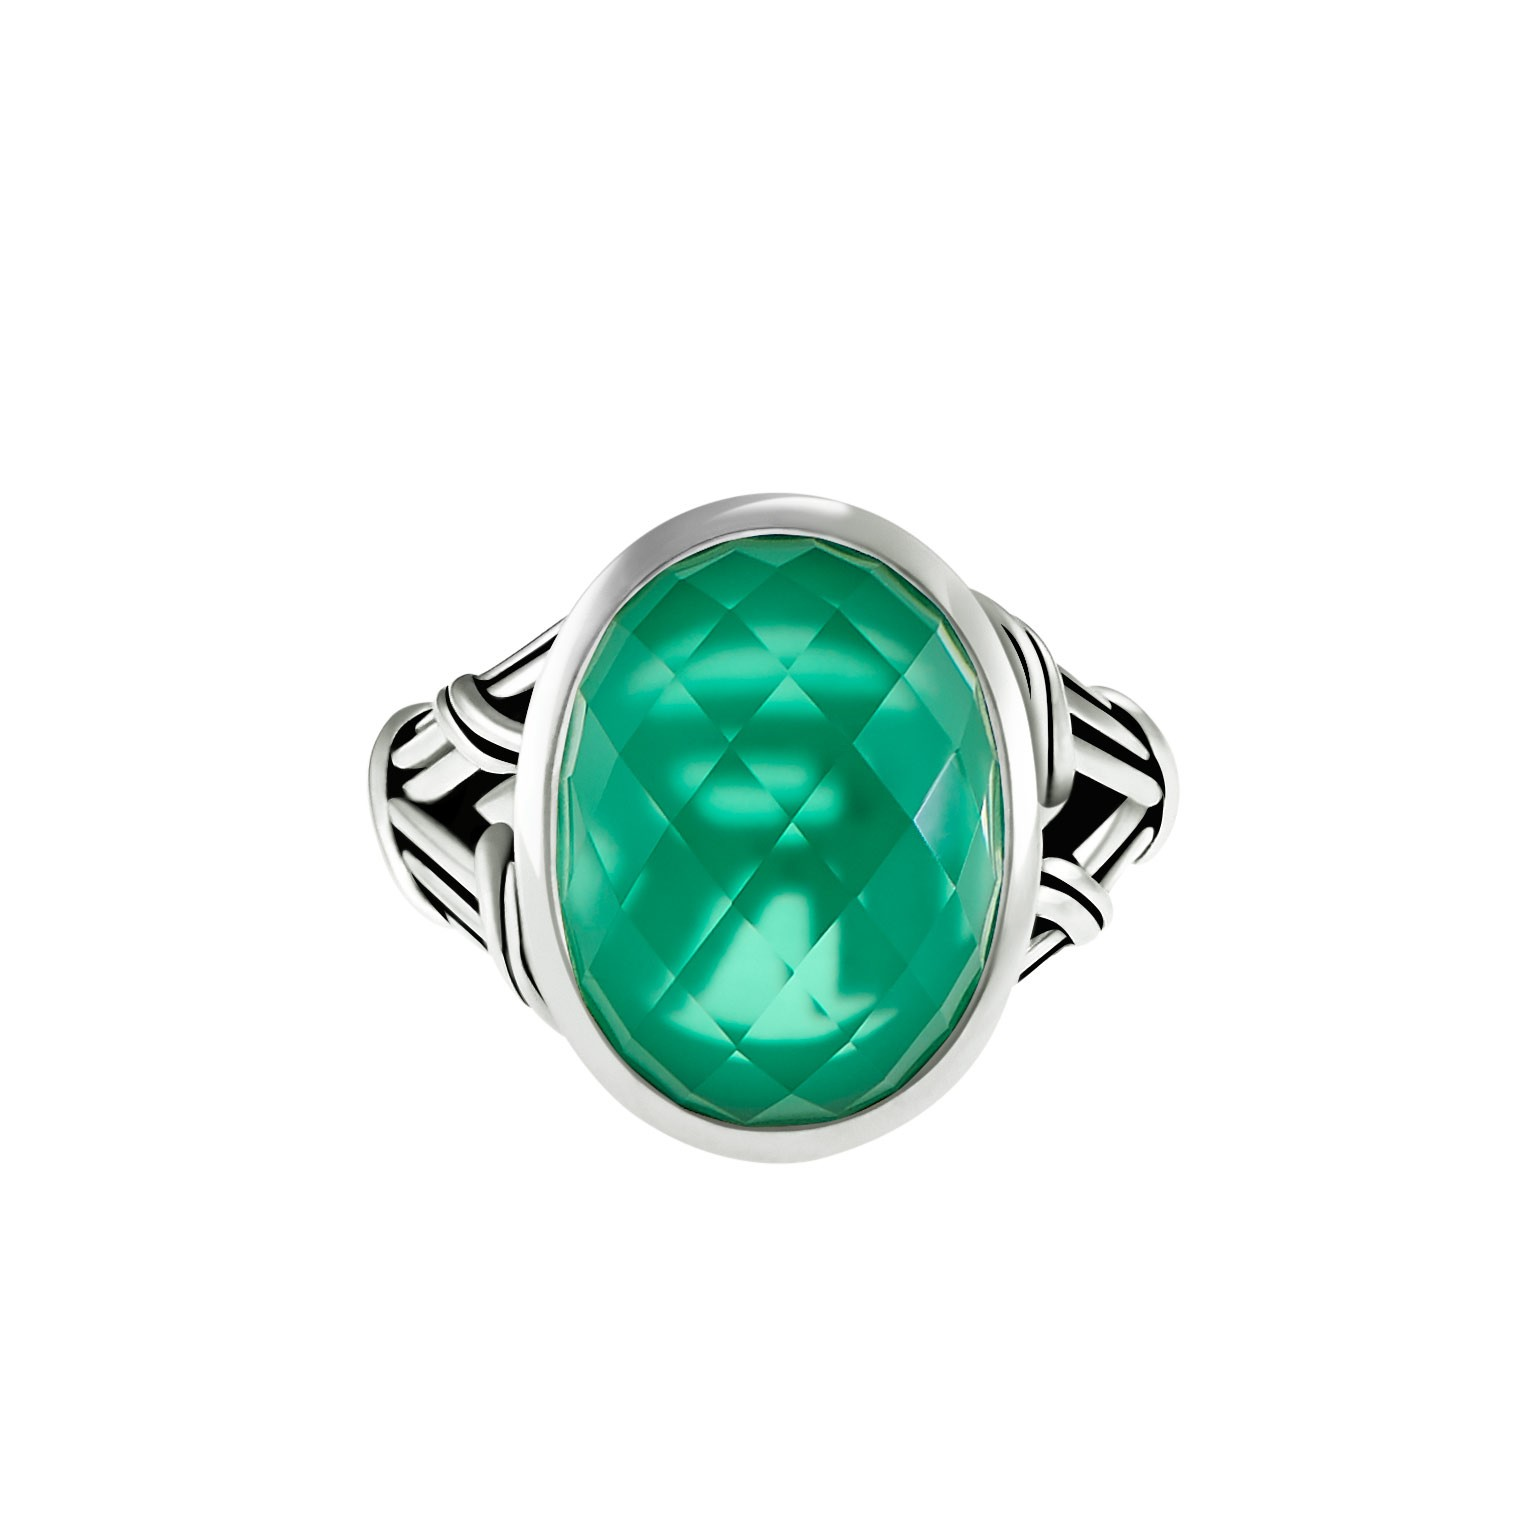 Fantasies Green Onyx Doublet Cocktail Ring with rock crystal in sterling silver